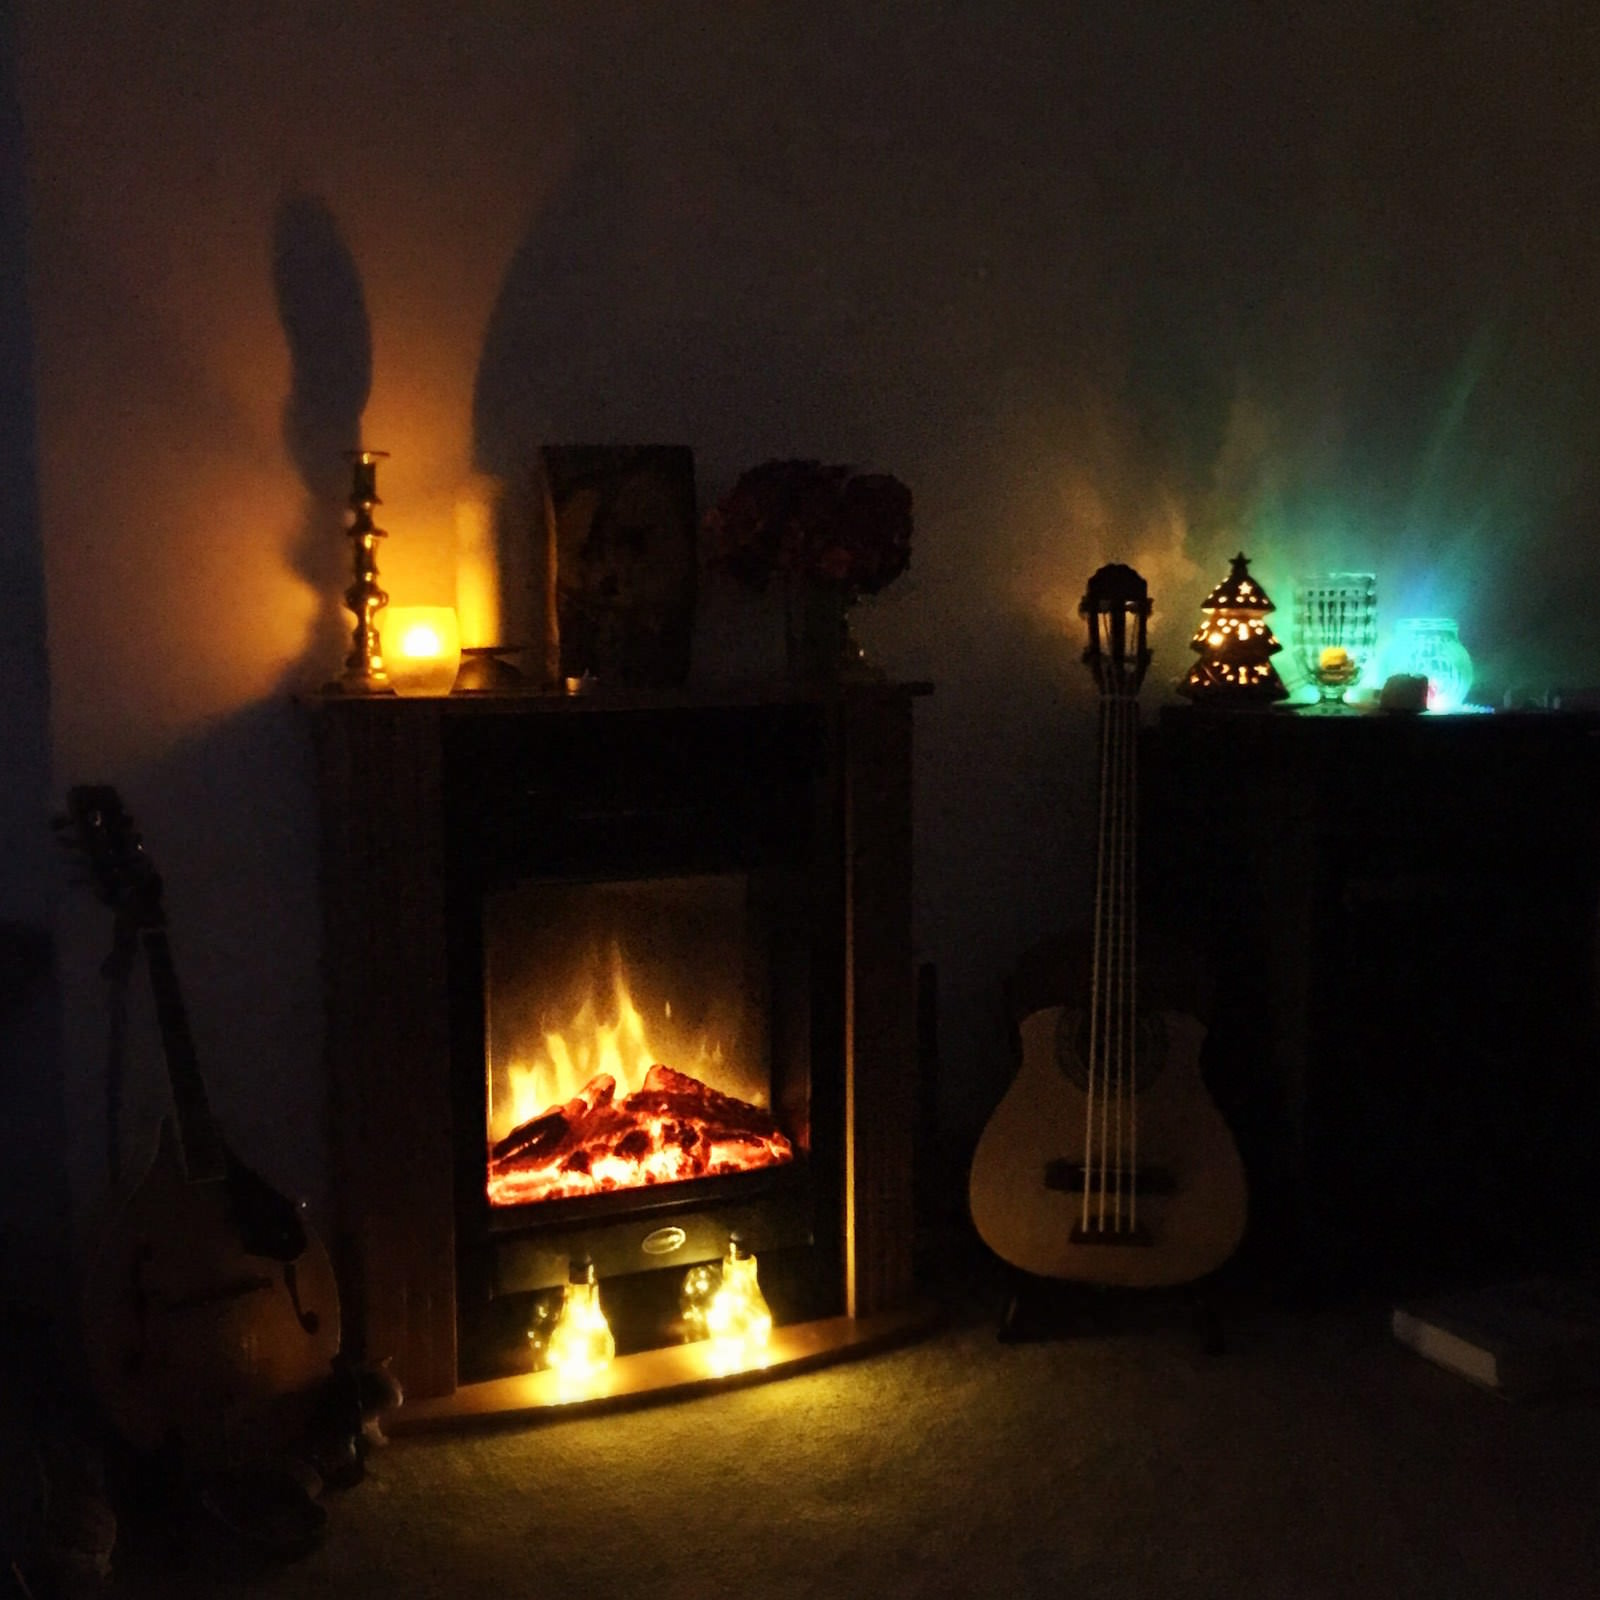 The fire place in my lounge - getting Christmassy in August!